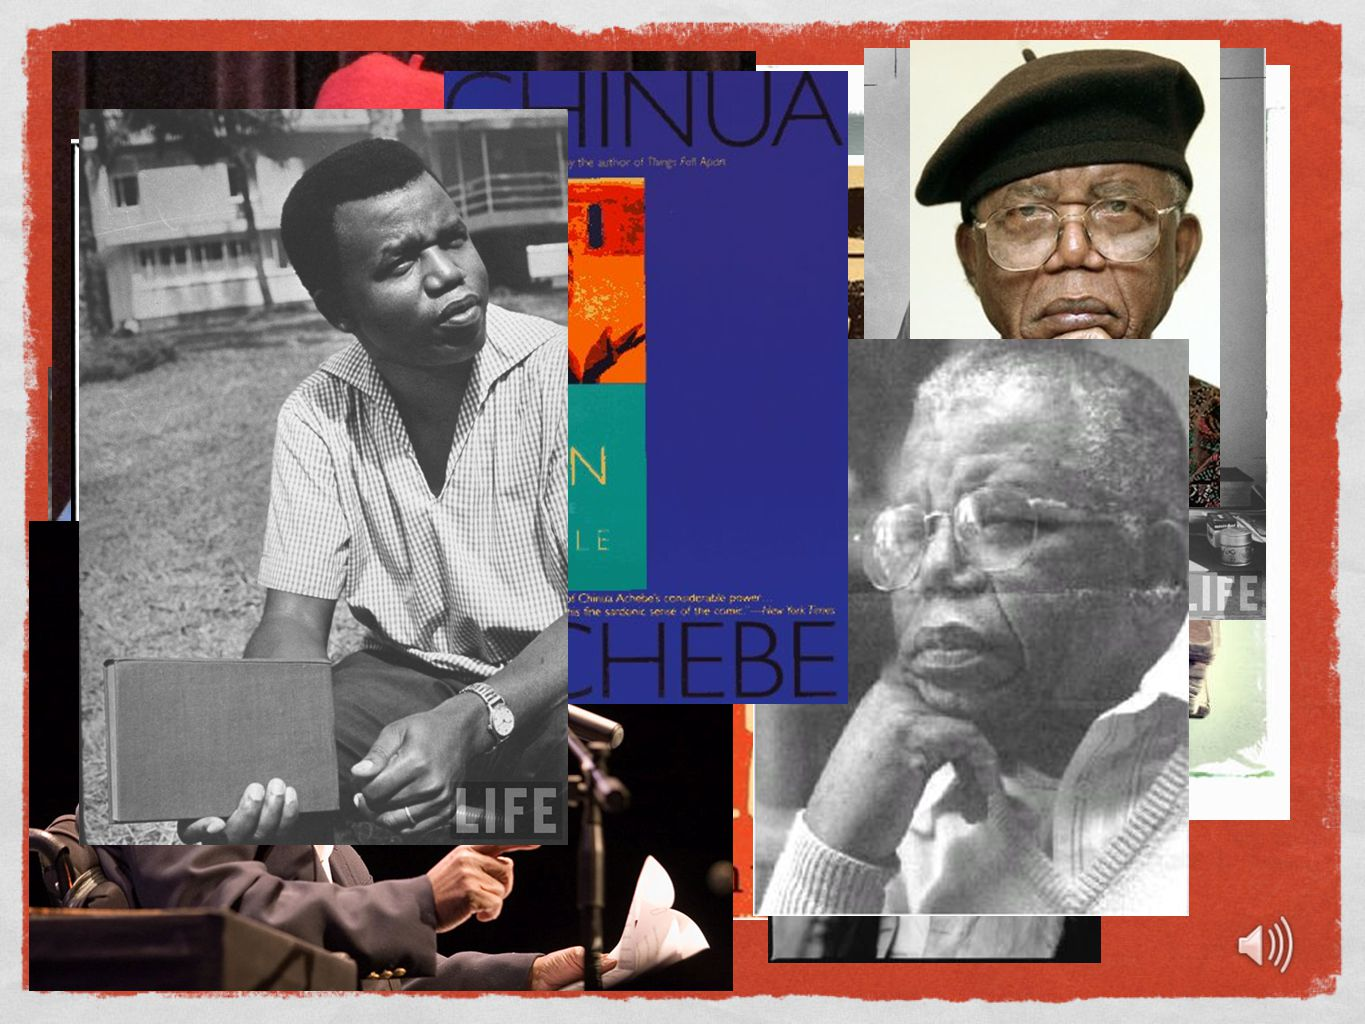 Occupation (1967-70) Nigerian Civil War In 1967, Achebe entered the Biafran governement service and cofounded a publishing company with his friend.